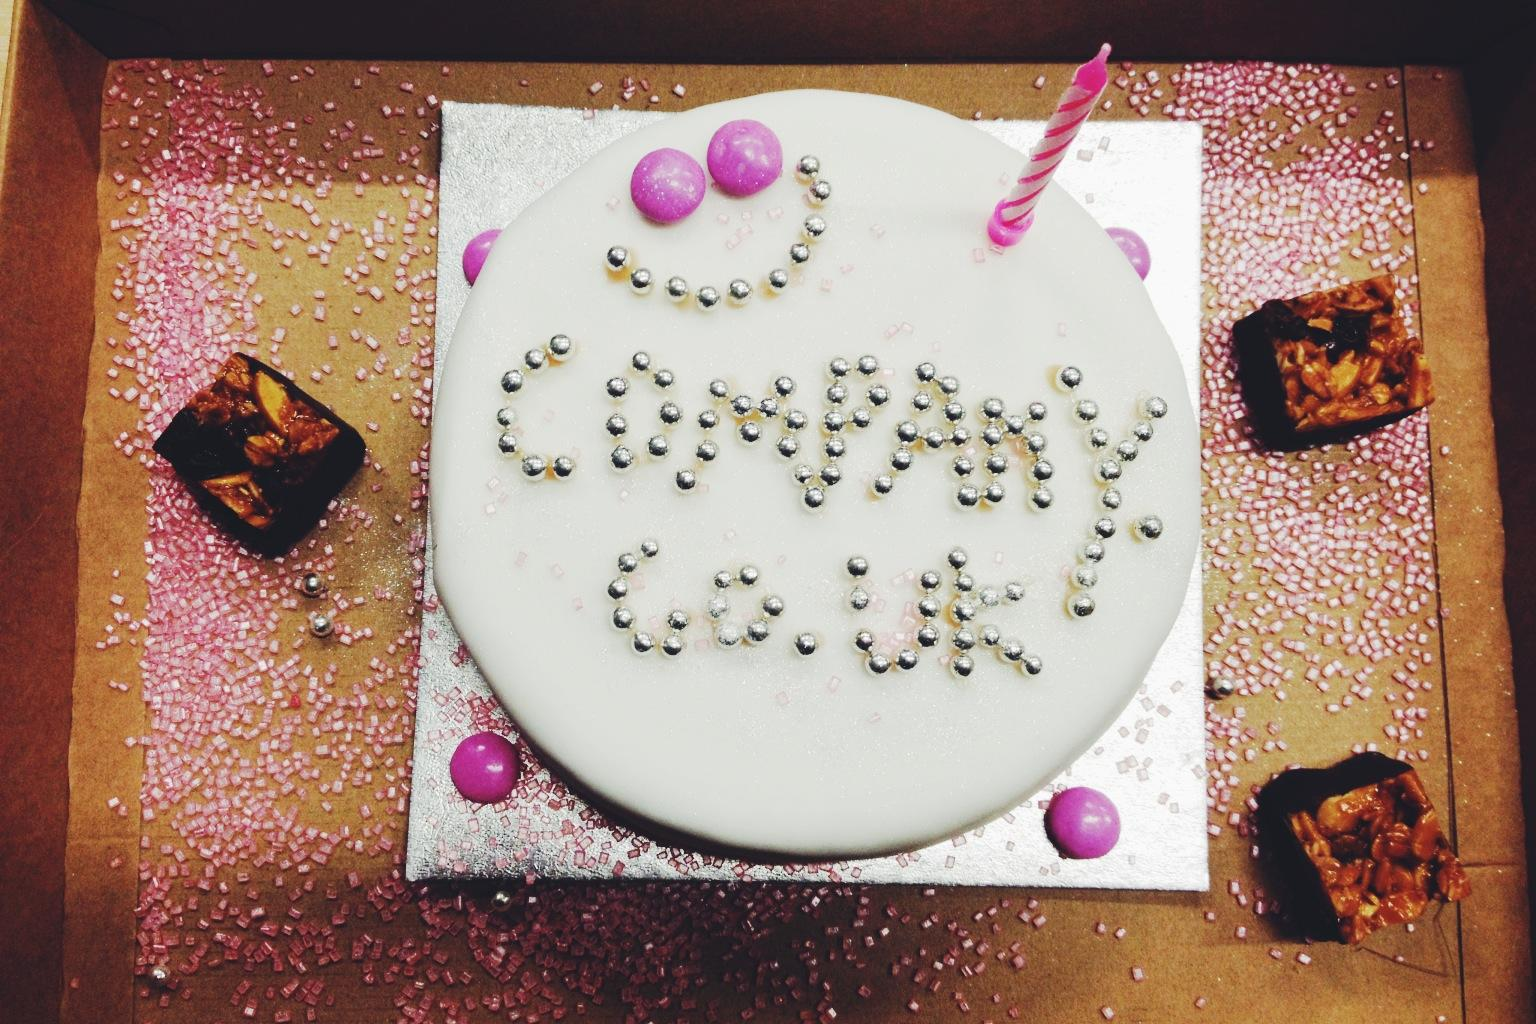 To celebrate @deciem's 1st birthday we've produced this cake of dreams #deciem 🎈🎁🎂 http://t.co/FkMFGEpoz5